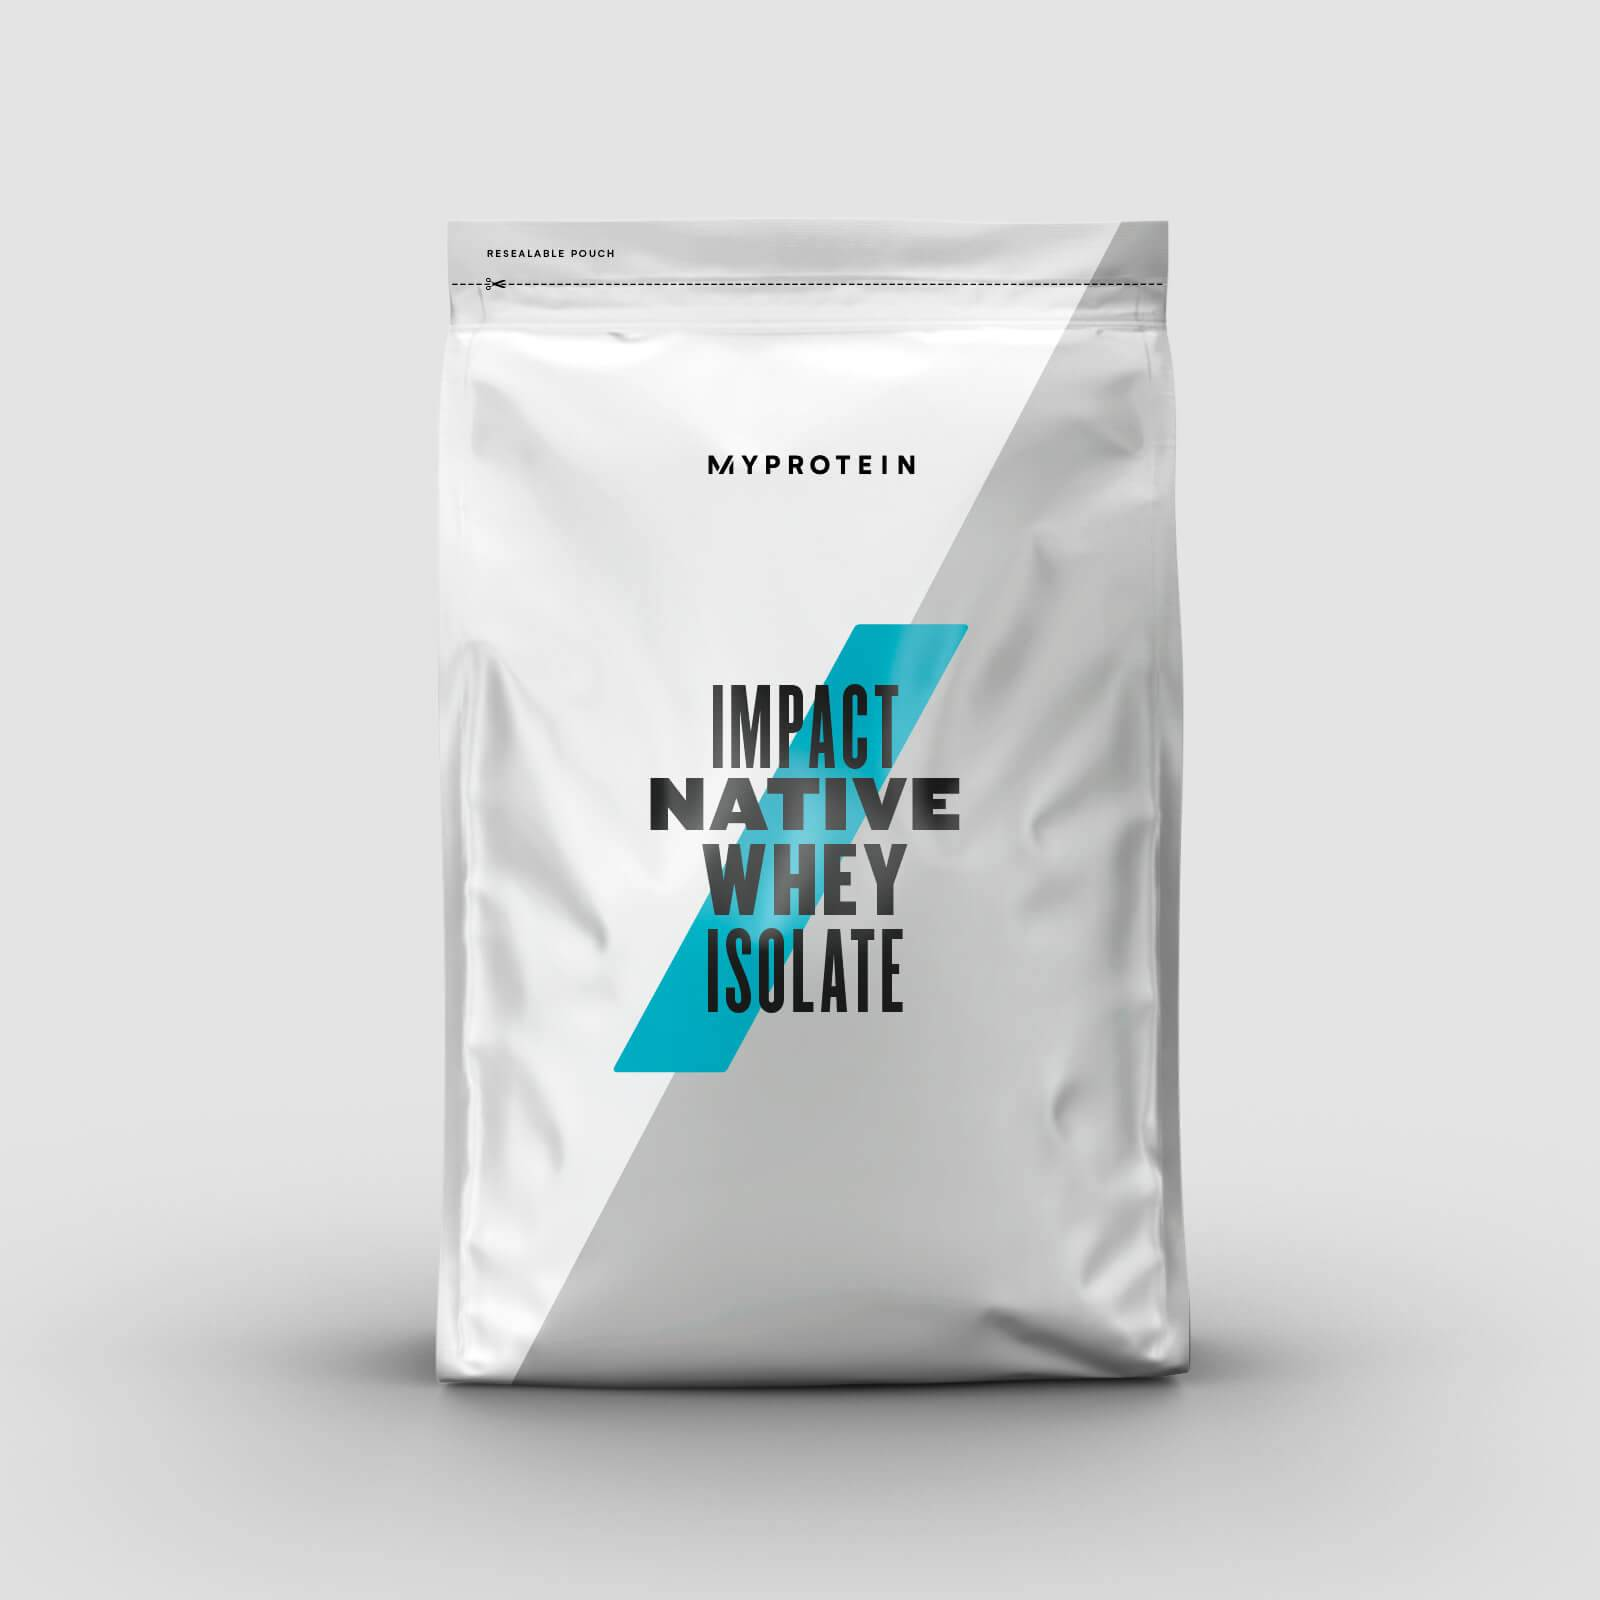 Myprotein Impact Native Whey Isolate - 1kg - Natural Banana and Cinnamon